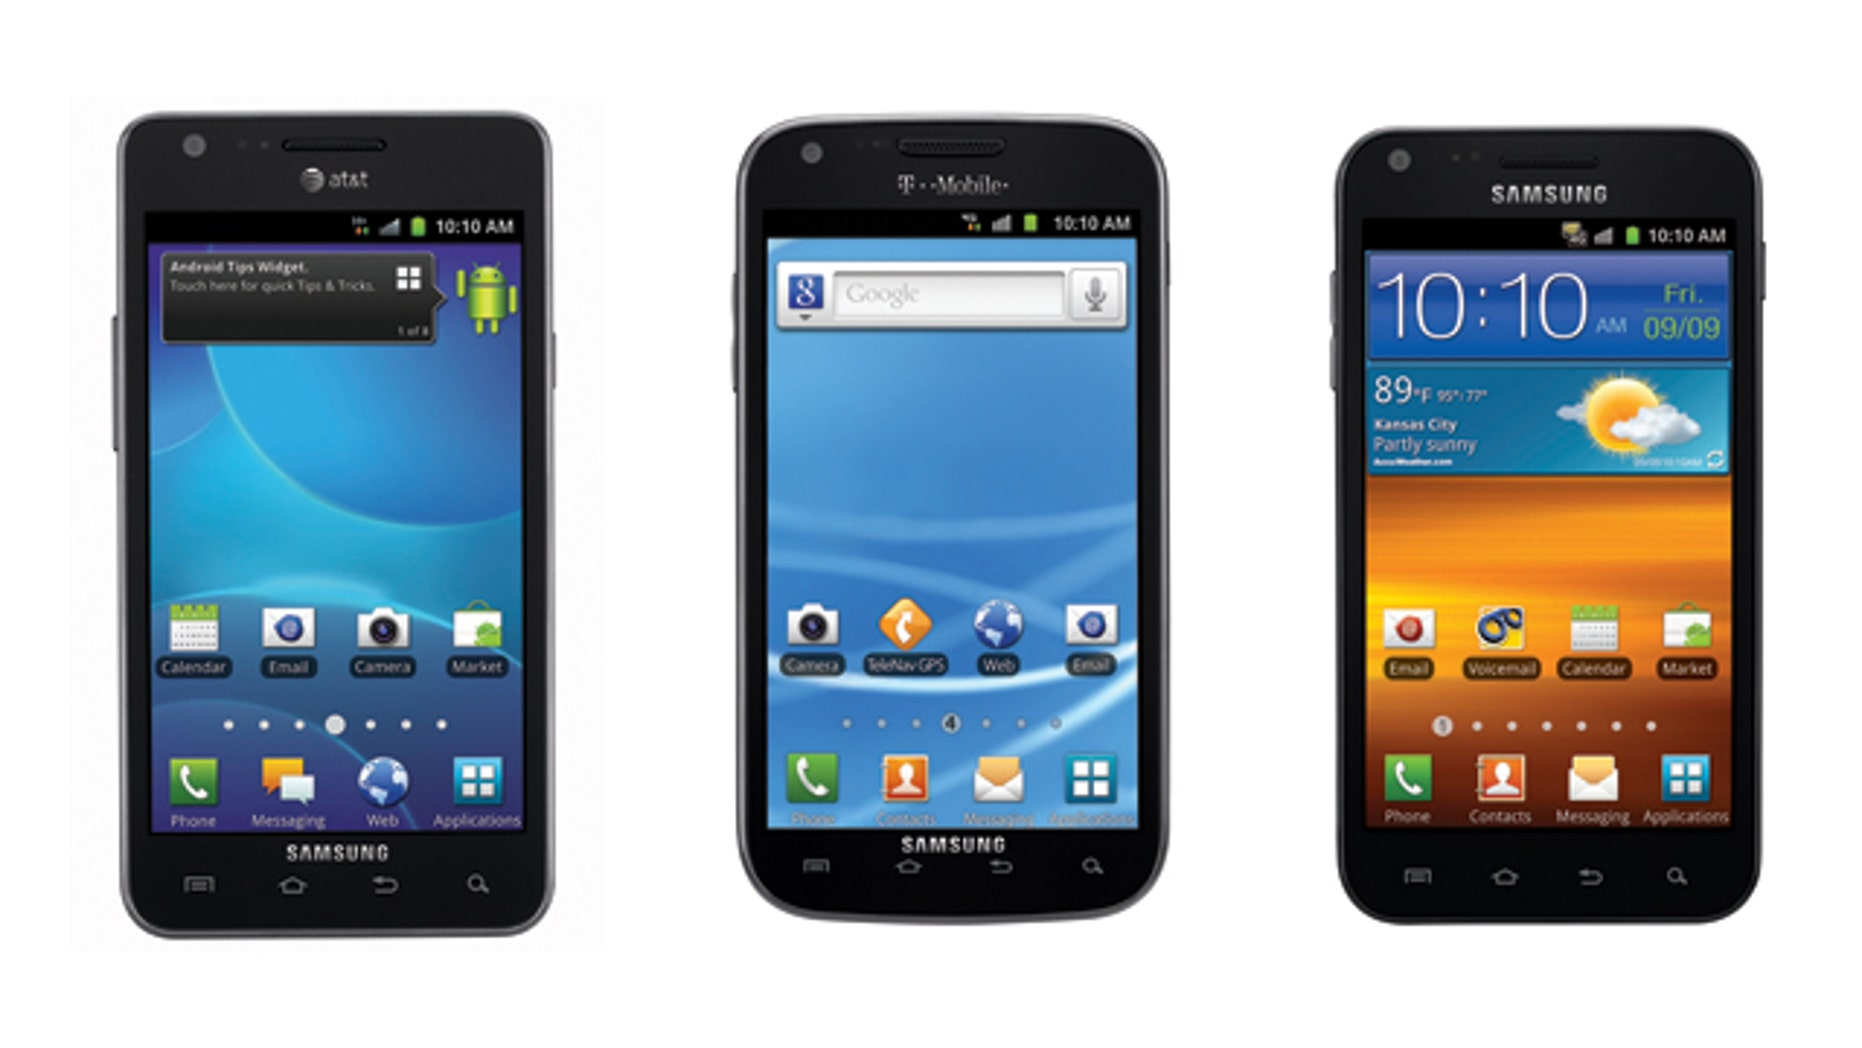 Samsung's newly announced Galaxy S II will be available this fall in three carrier flavors: AT&T, T-Mobile, and Sprint (from left to right).